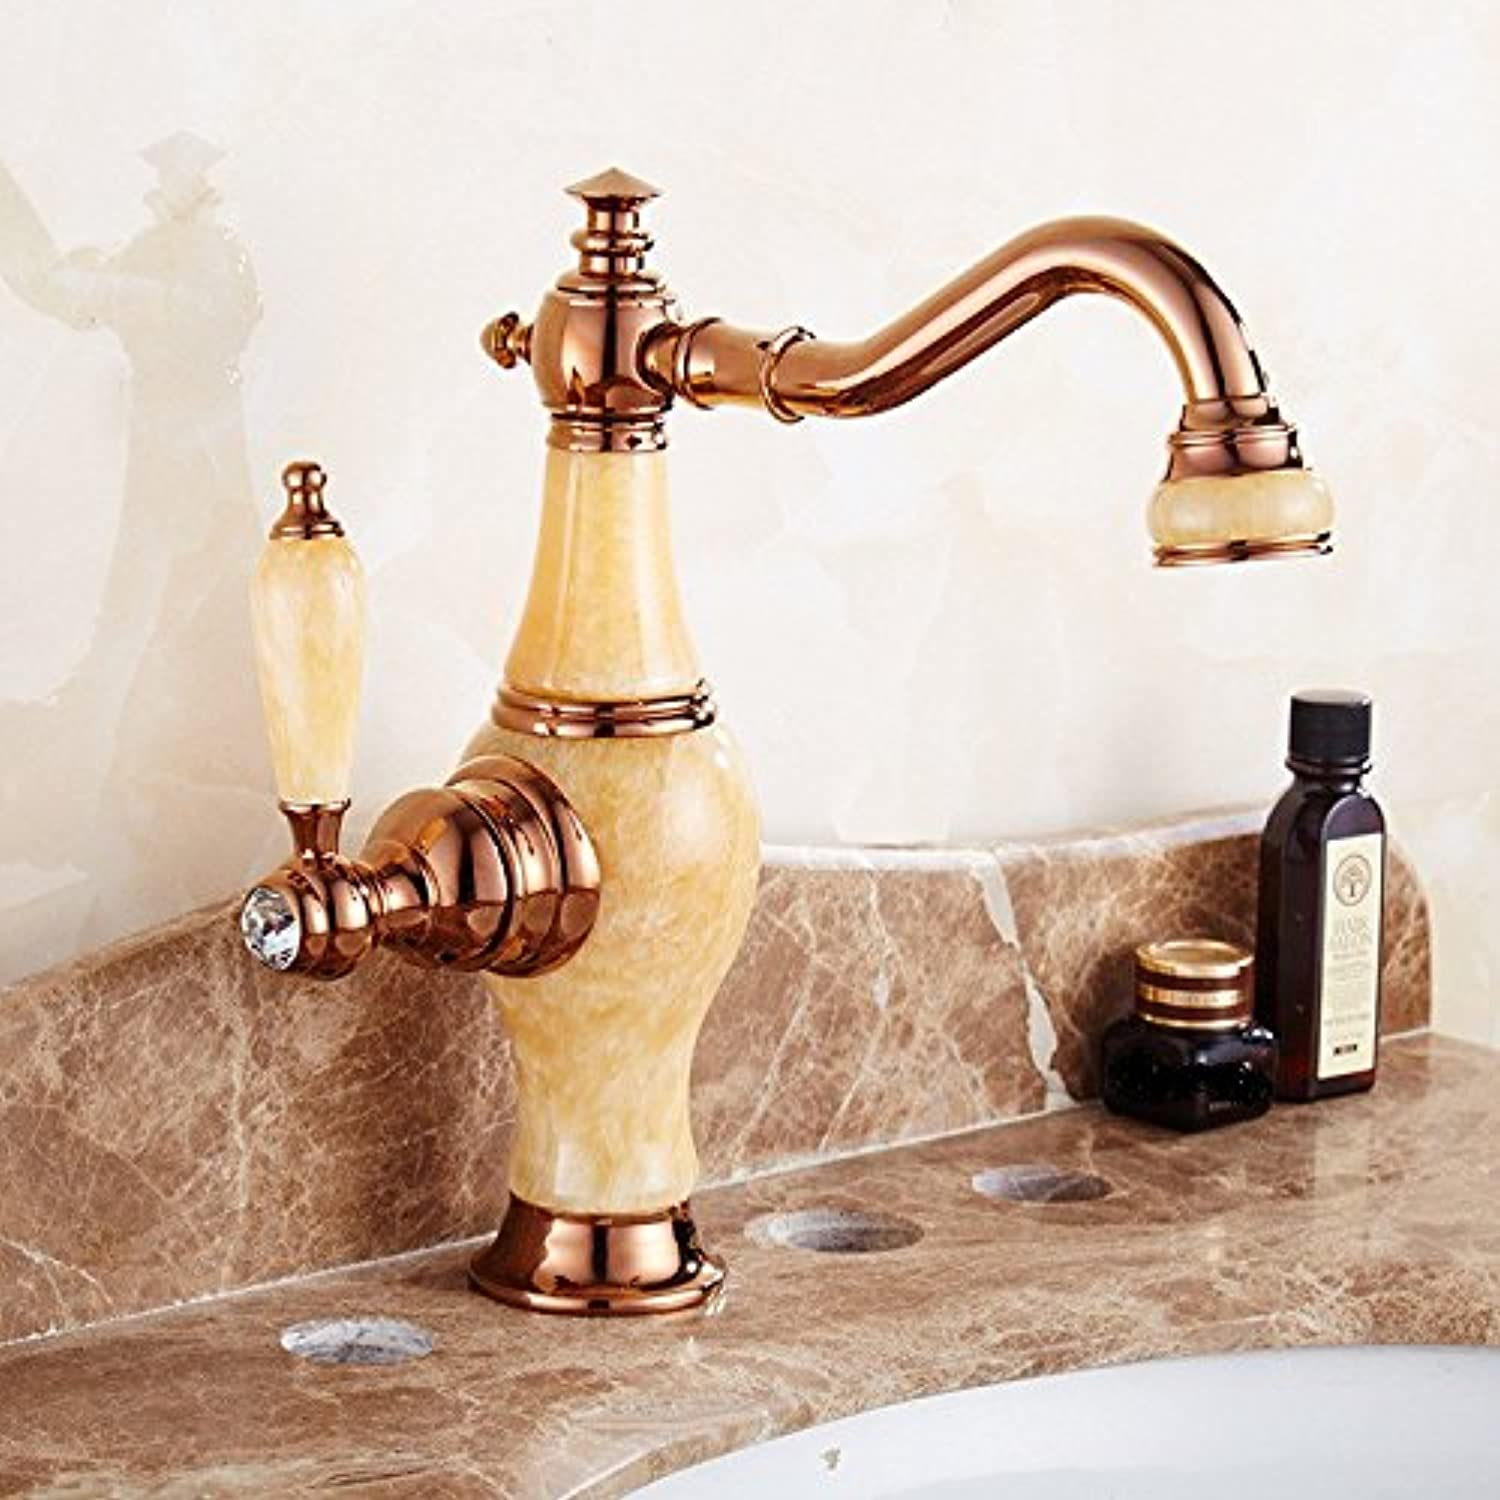 Hlluya Professional Sink Mixer Tap Kitchen Faucet The gold-copper jade hot and cold water basin mixer